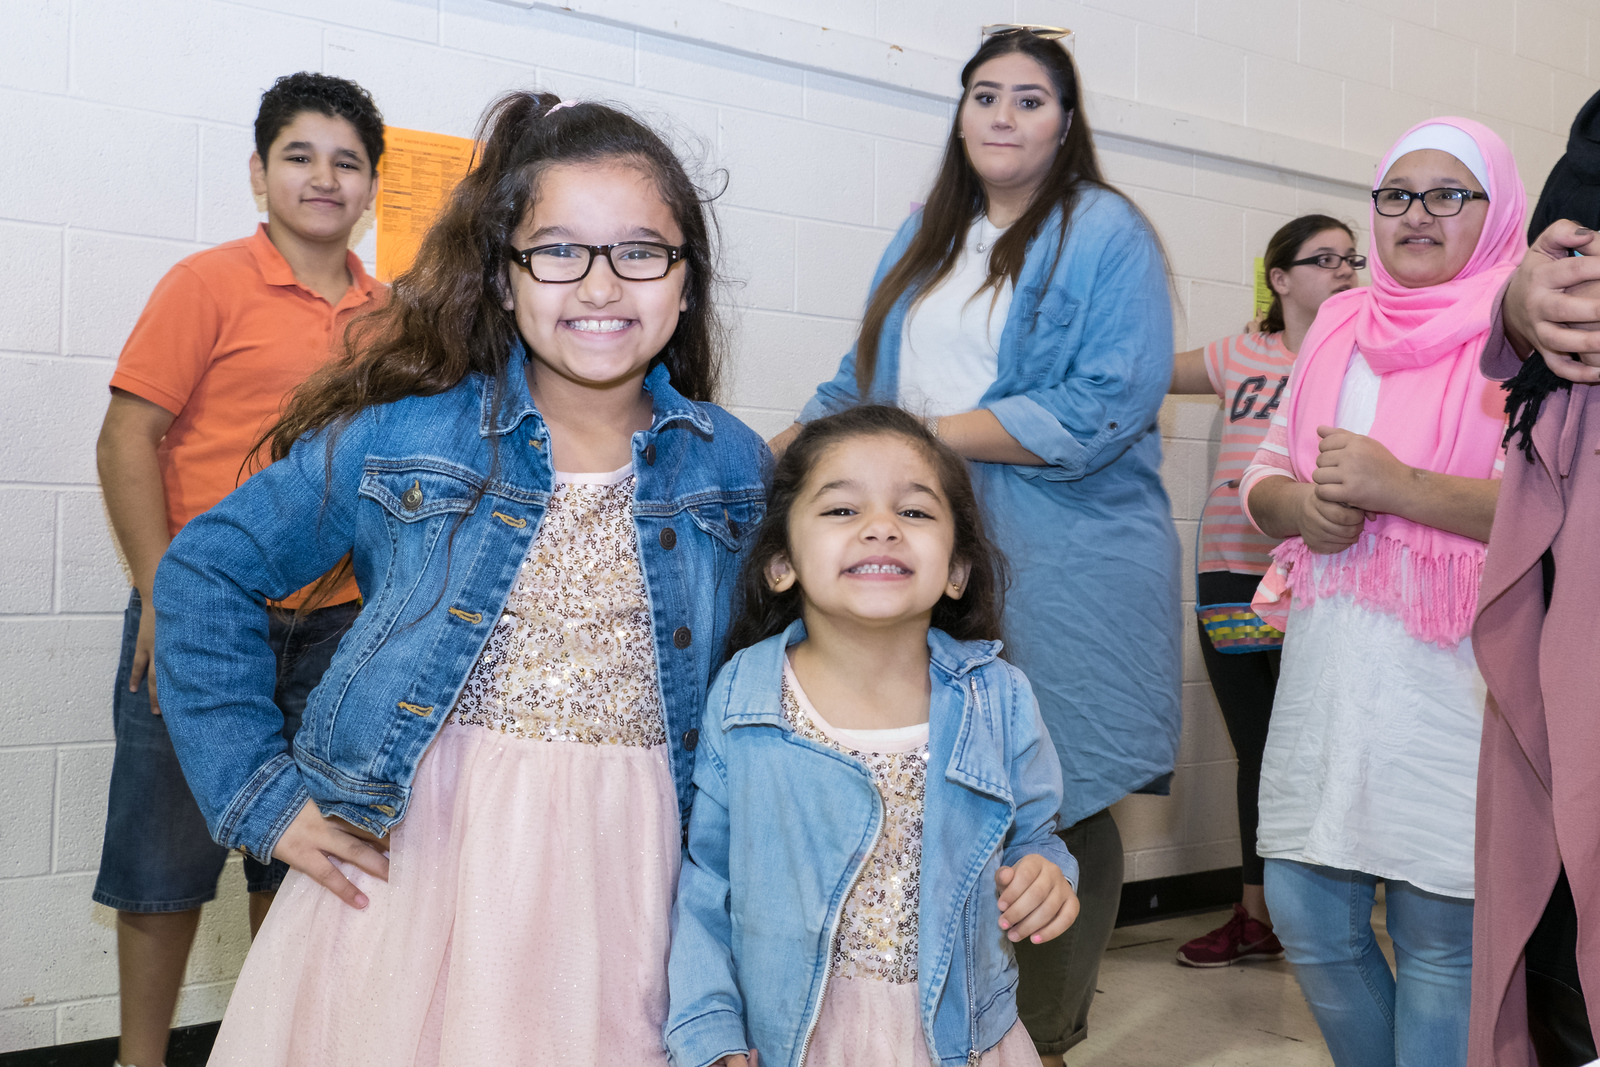 Nureen and Raneem Mohan wait to take photos with the Easter Bunny. Photo by Debbie Malyn for the Press & Guide.